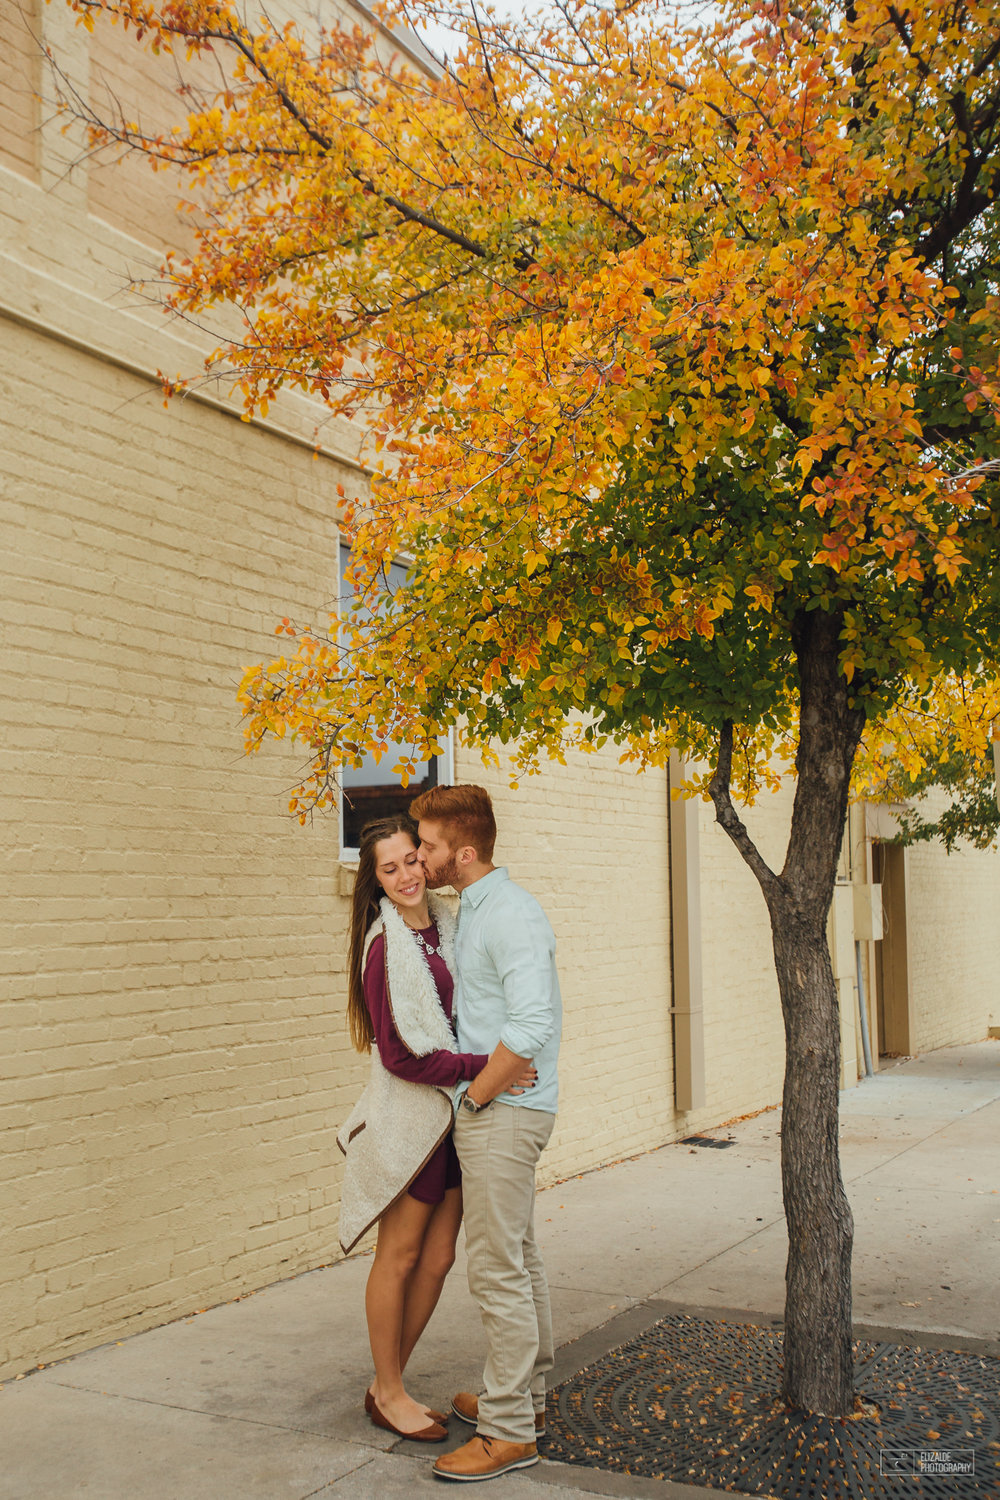 Engagement session_Engagement_Dallas photographer_Denton Photographer_elizalde photography_DFW wedding photographer_wedding (8 of 24).jpg